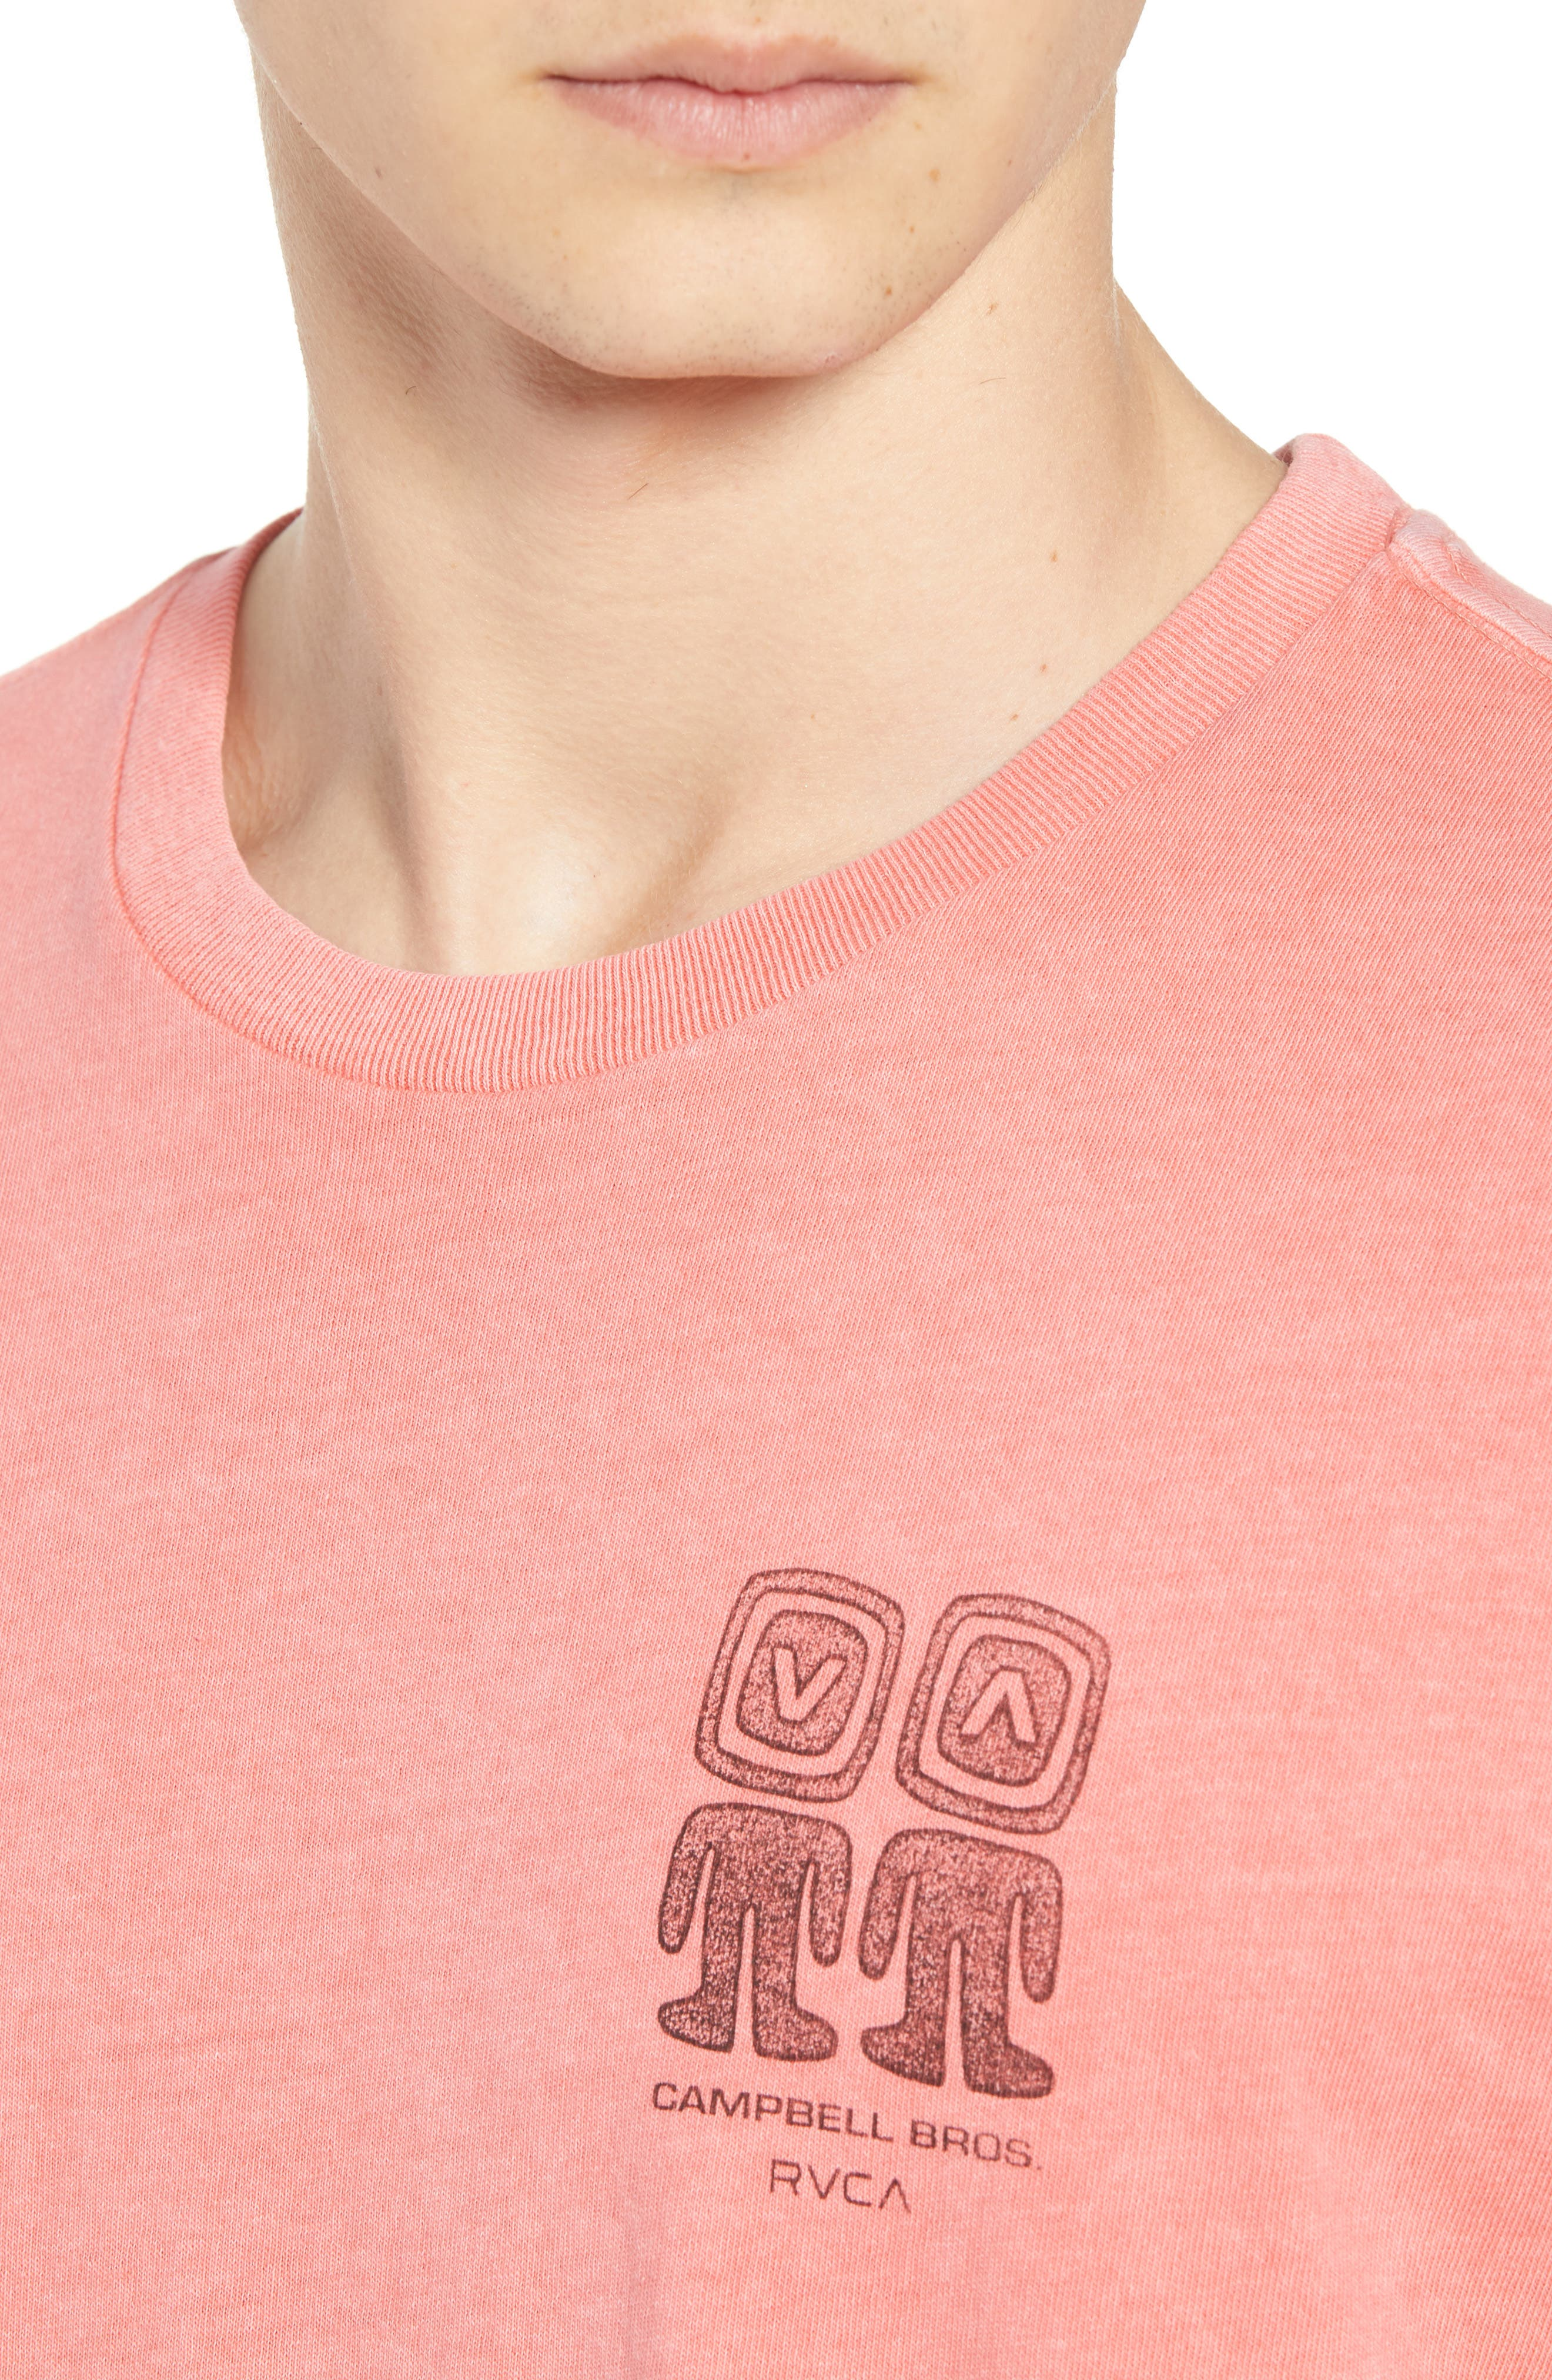 Campbell Brothers T-Shirt,                             Alternate thumbnail 4, color,                             PINK